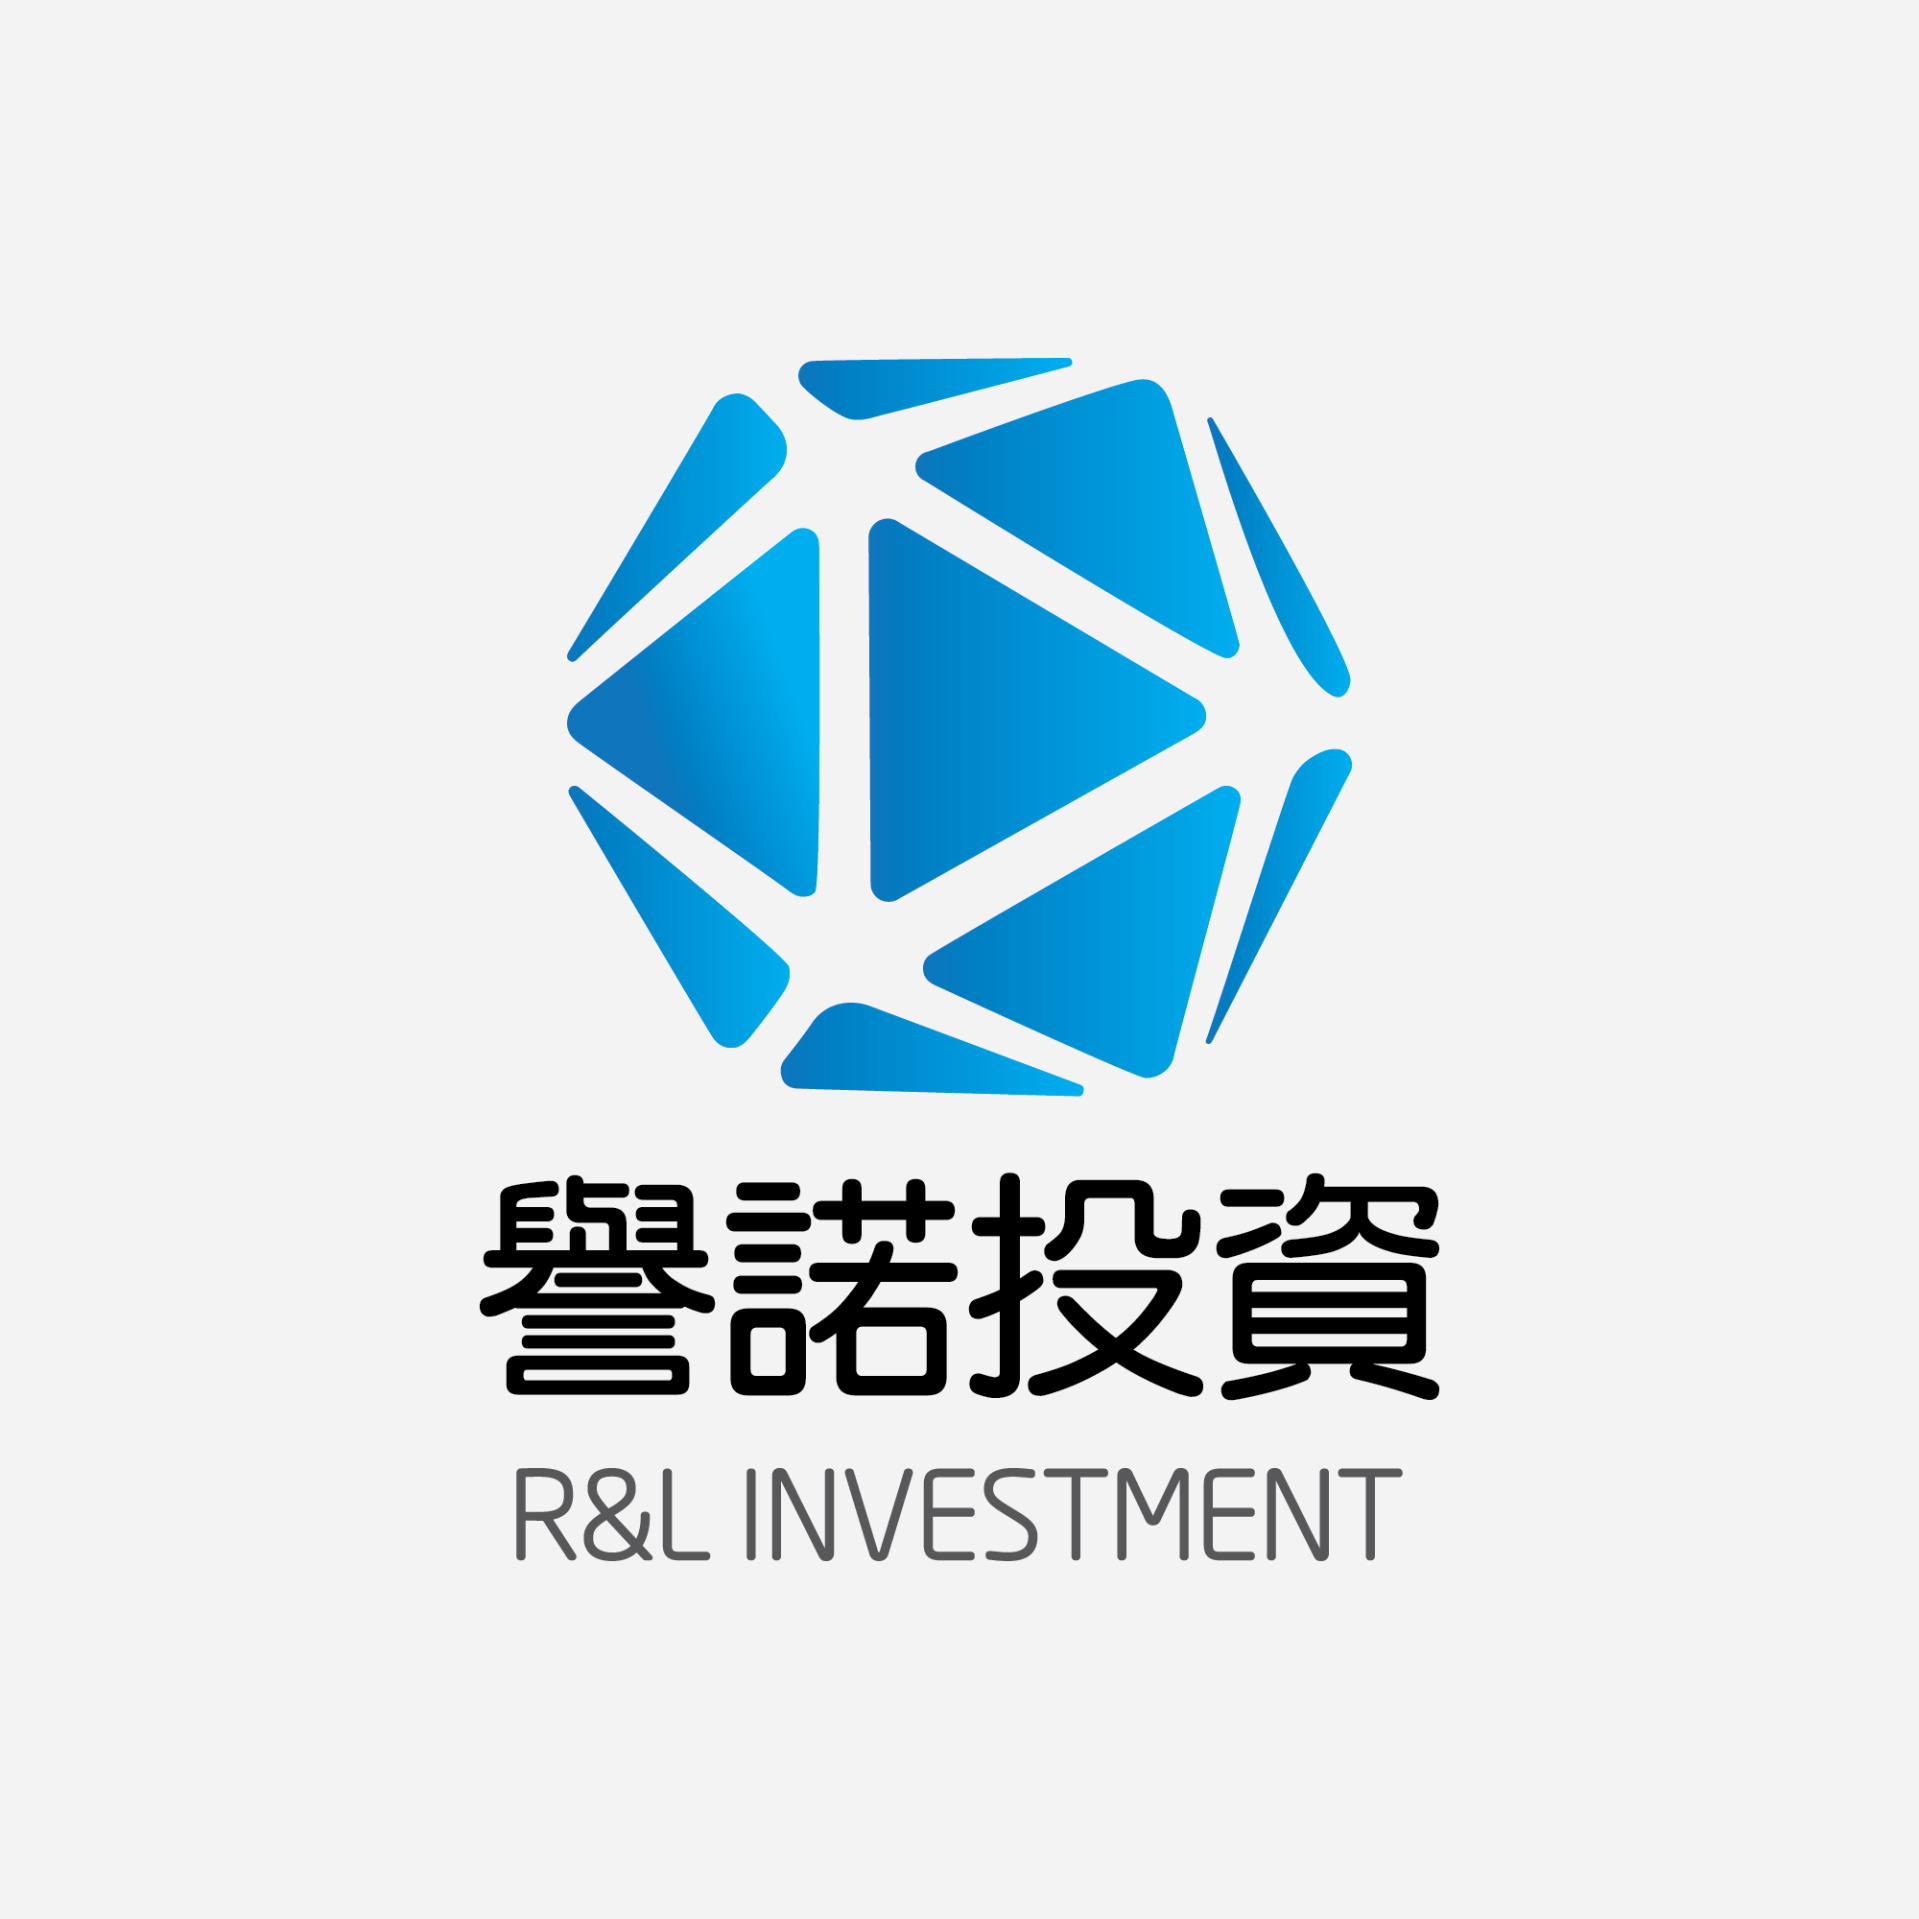 rlinvestment-icon_grey-02